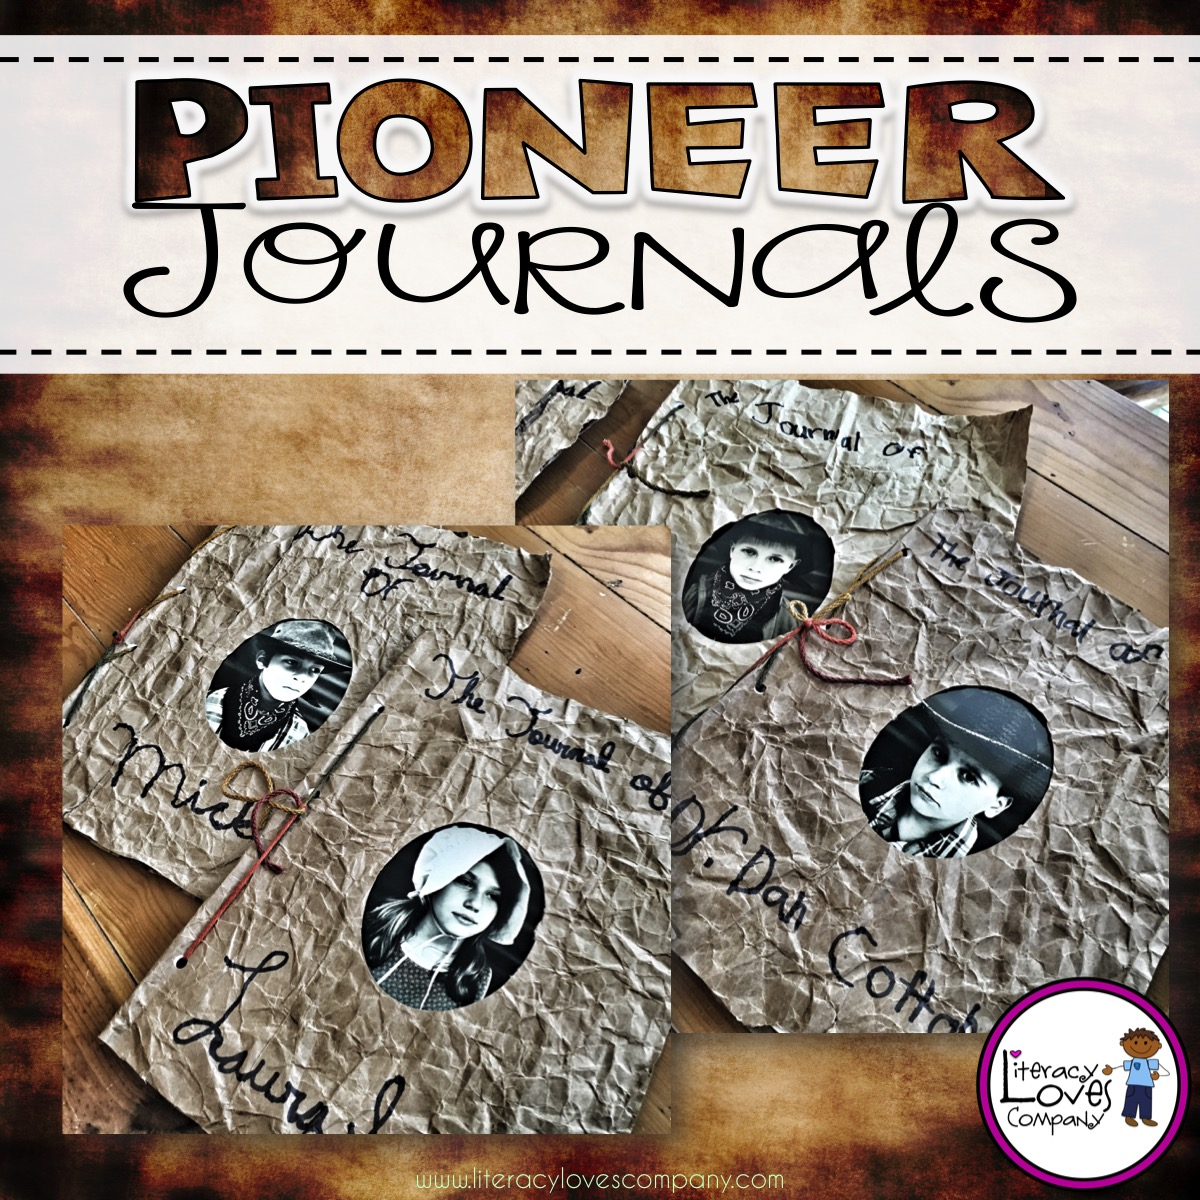 Classroom Design Journal Articles ~ Literacy loves company classroom diy pioneer journals